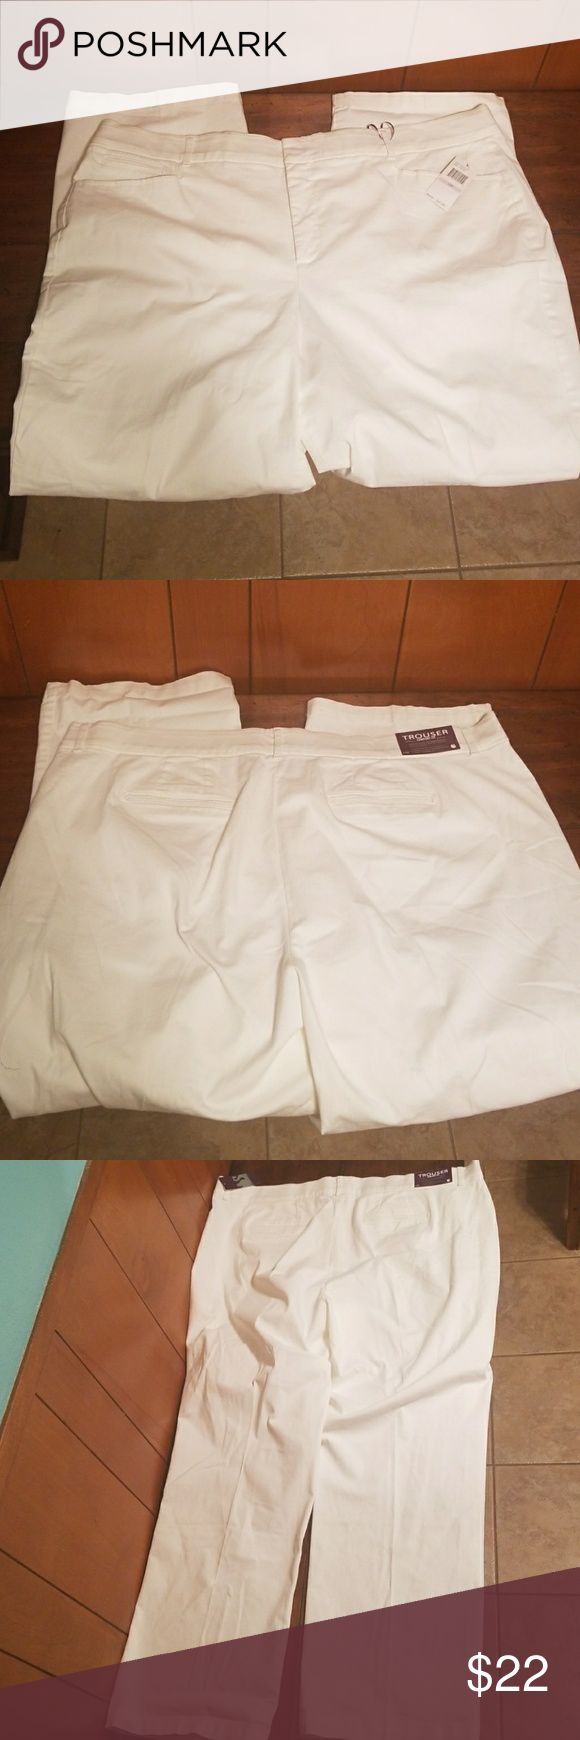 NWT Ladies plus size slacks NWT Ladies plus size white slacks. Excellent condition no rips stains or tears. Size 22 waist and inseam is 31inches. There is some stretch. All reasonable offers will be considered. Gloria Vanderbilt Pants Trousers